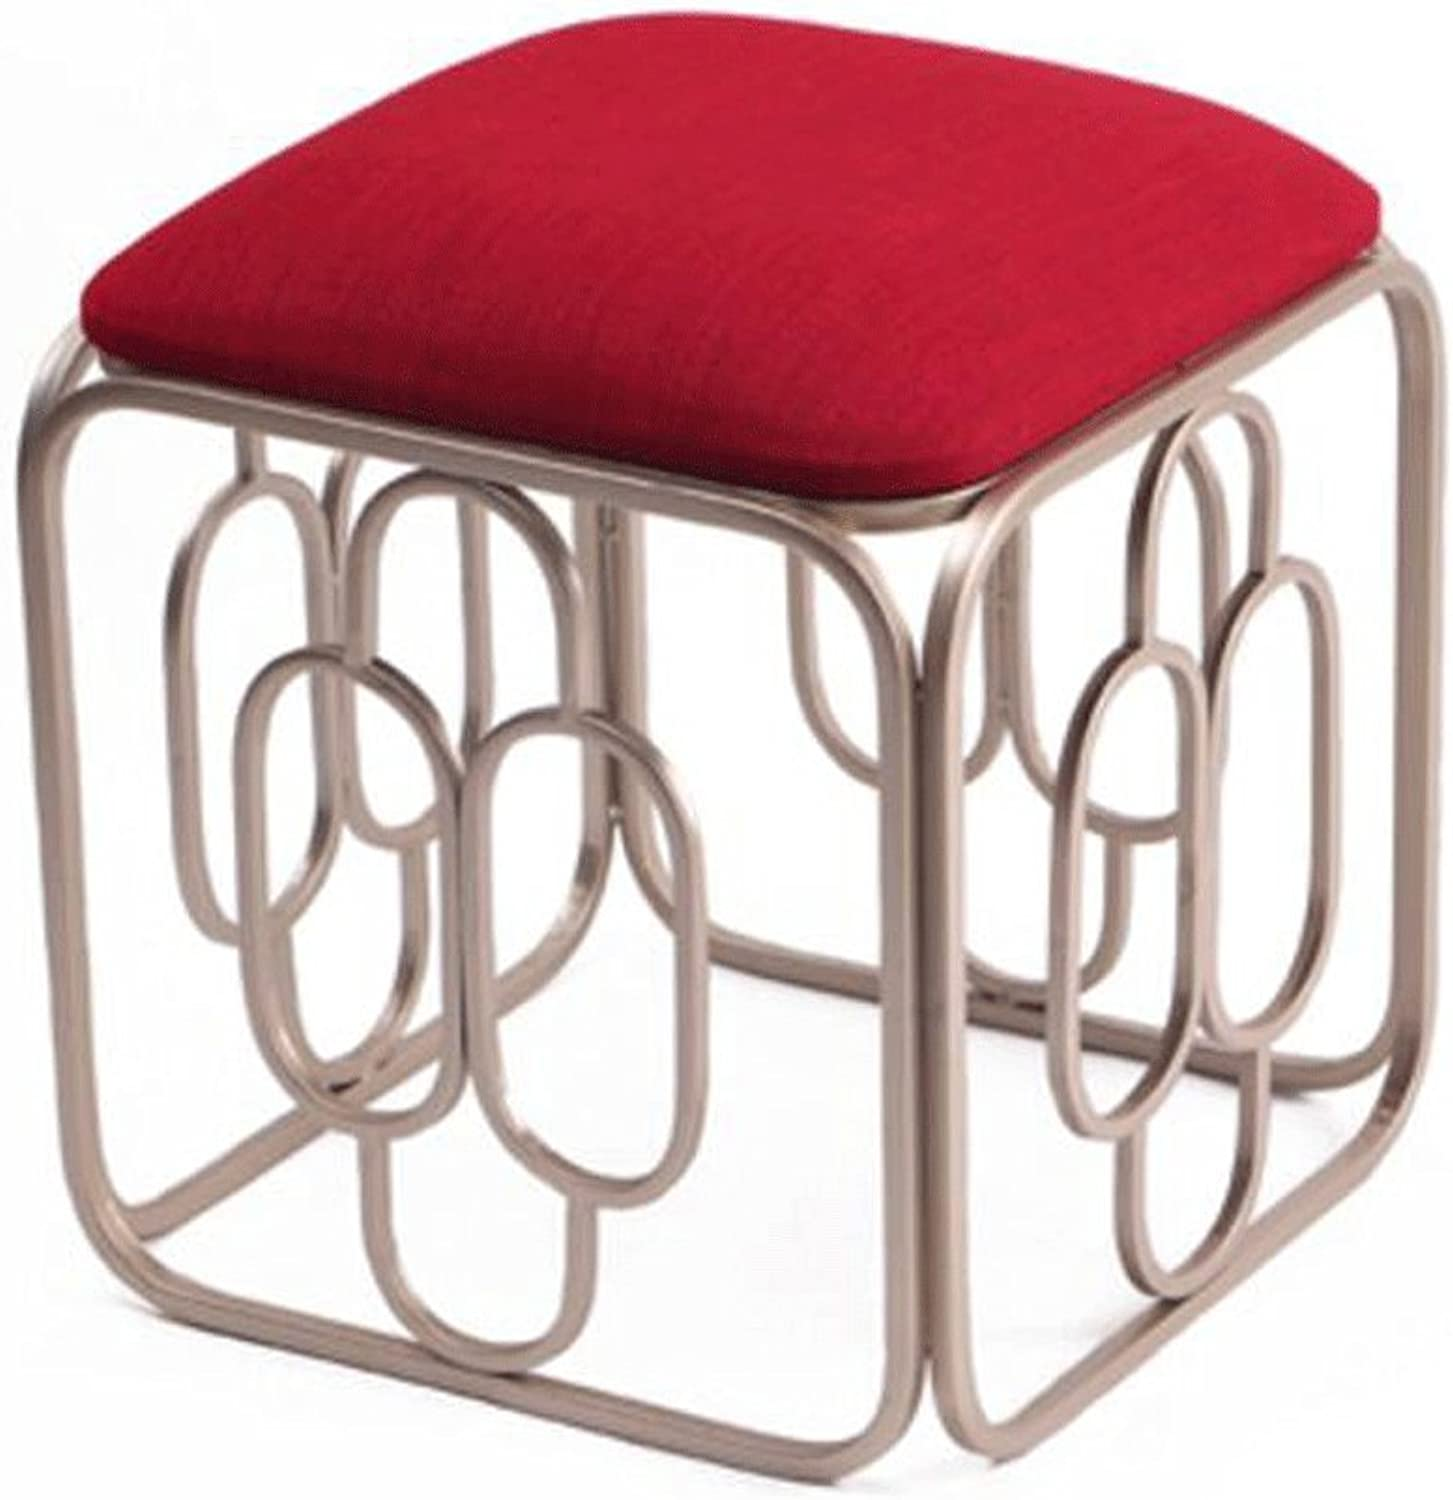 TXXM Barstools Metal Fashion Makeup Stool Linen Cushion Stool Meal Stool shoes Bench Coffee Table Stool (color   B, Size   H48CM)